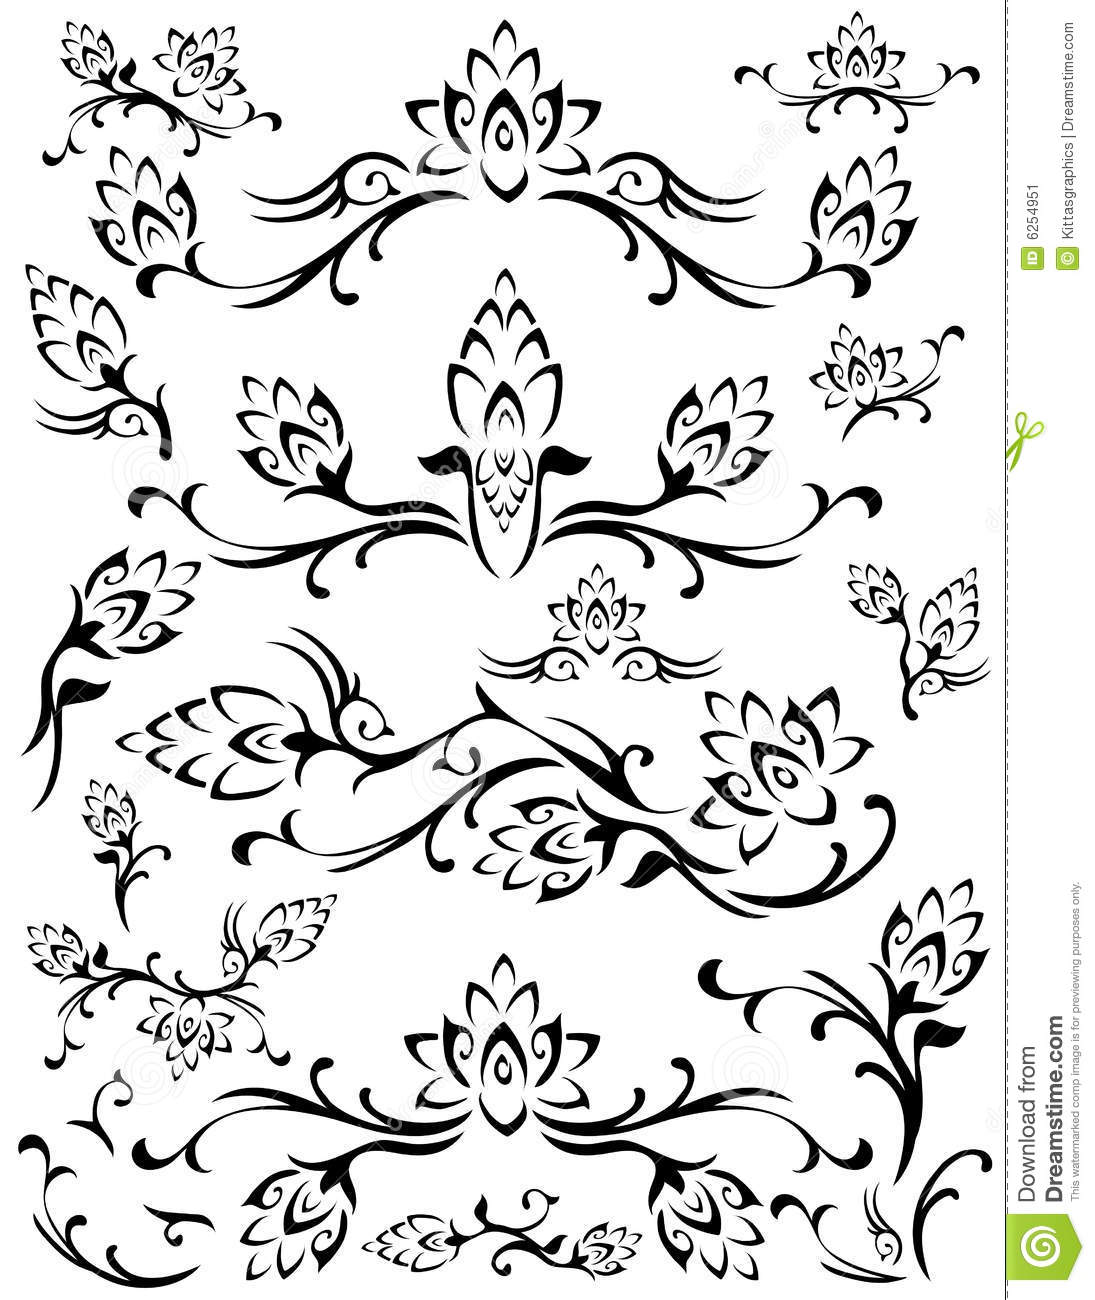 Abstract Flower Background With Decoration Elements For: Flower Floral Leaf Elements Abstract Silhouette Stock